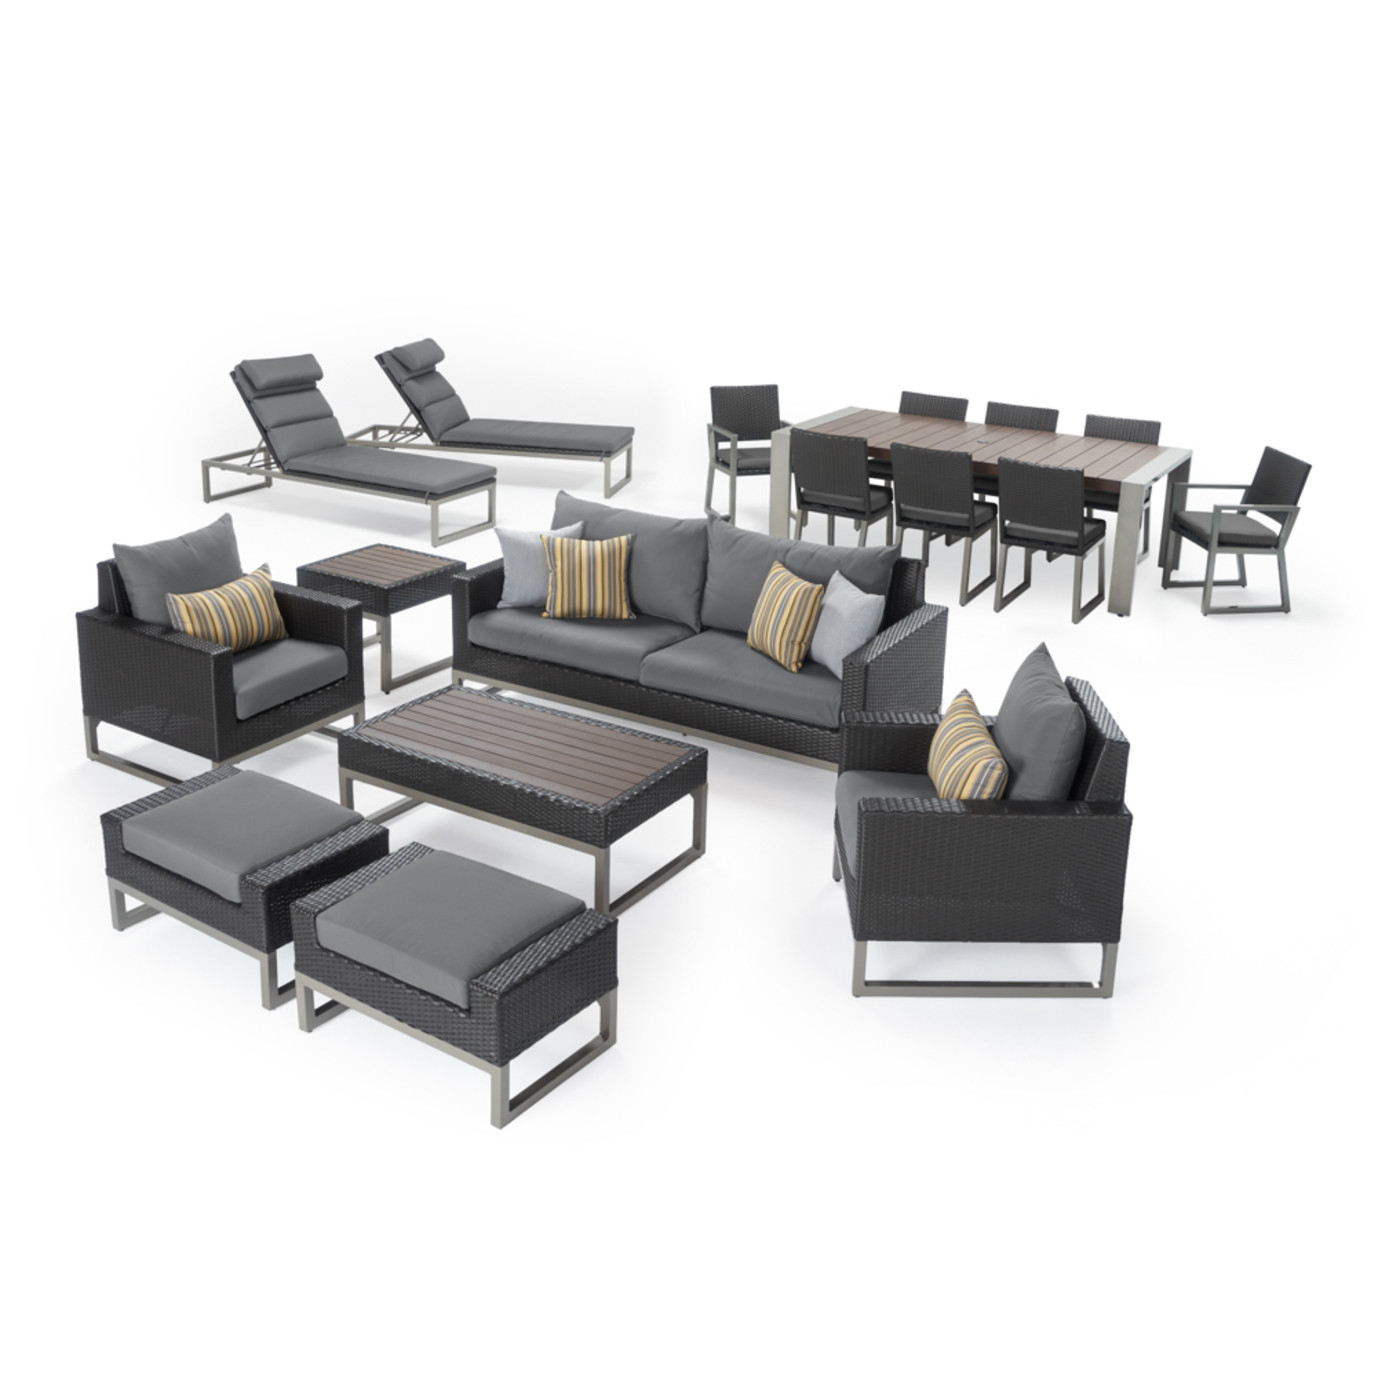 Milo™ Espresso 18 Piece Estate Set - Charcoal Gray